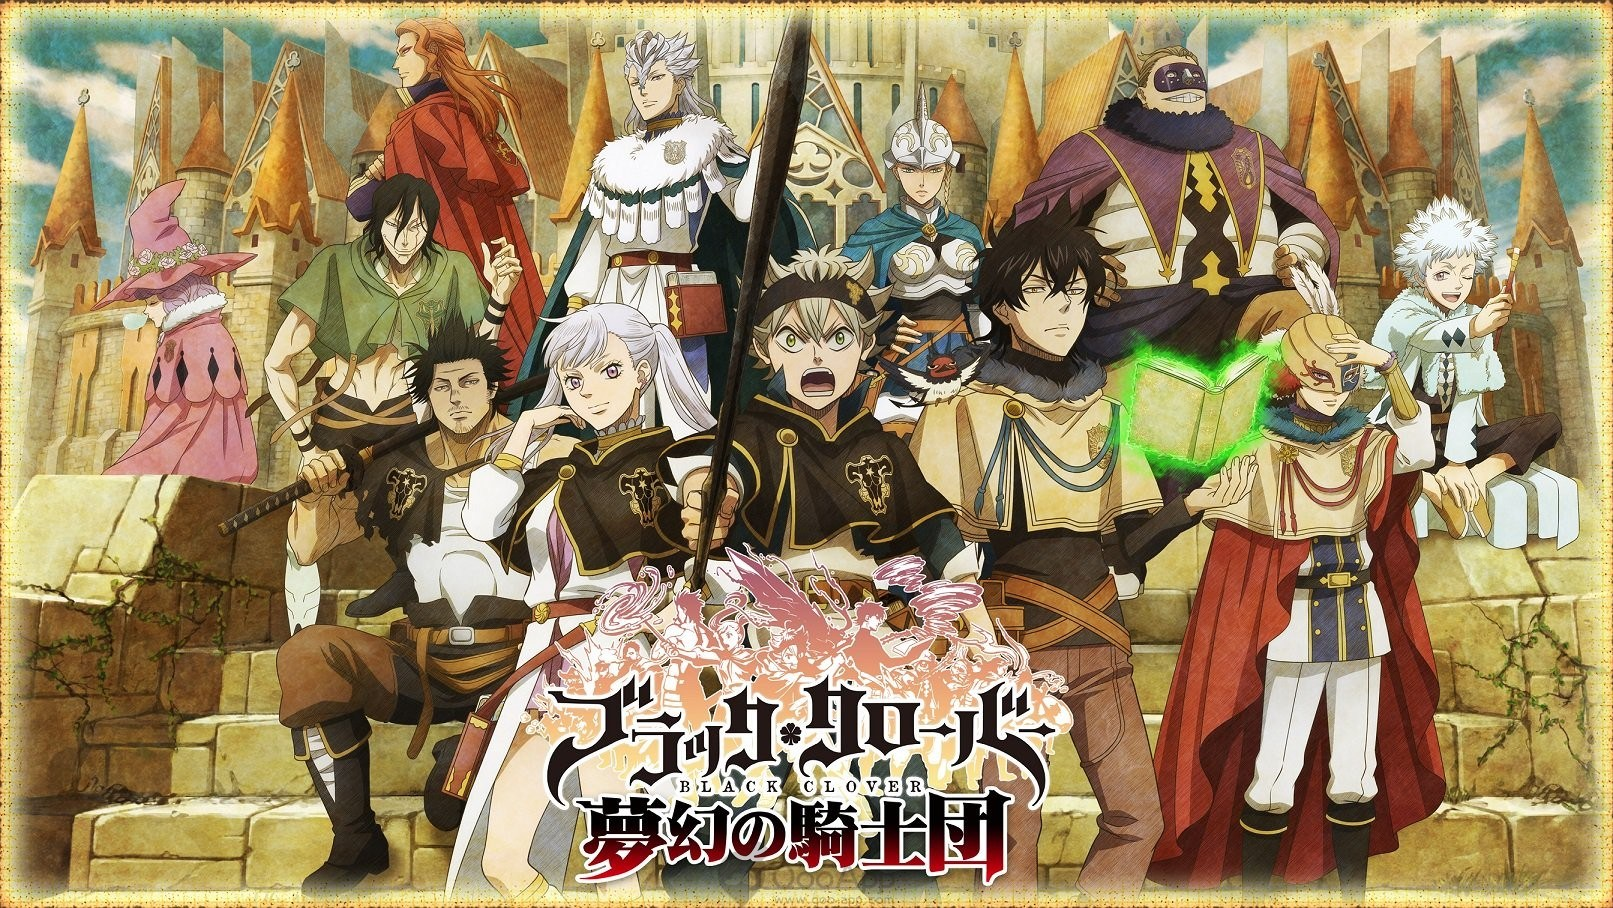 Cover image of Black Clover